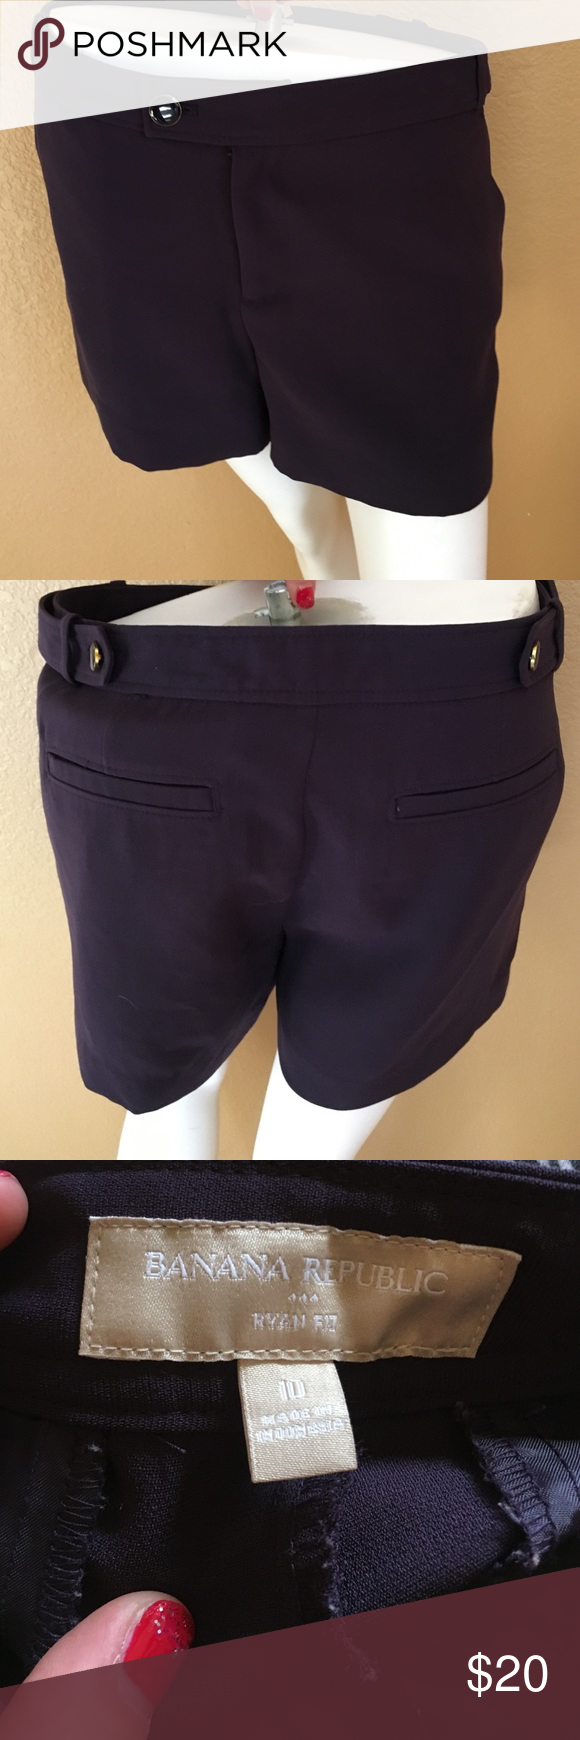 Plum Banana Republic Shorts! Plum Colored Banana Republic Ryan Fit Shorts! Size 10, in excellent condition only worn a couple times! Banana Republic Shorts